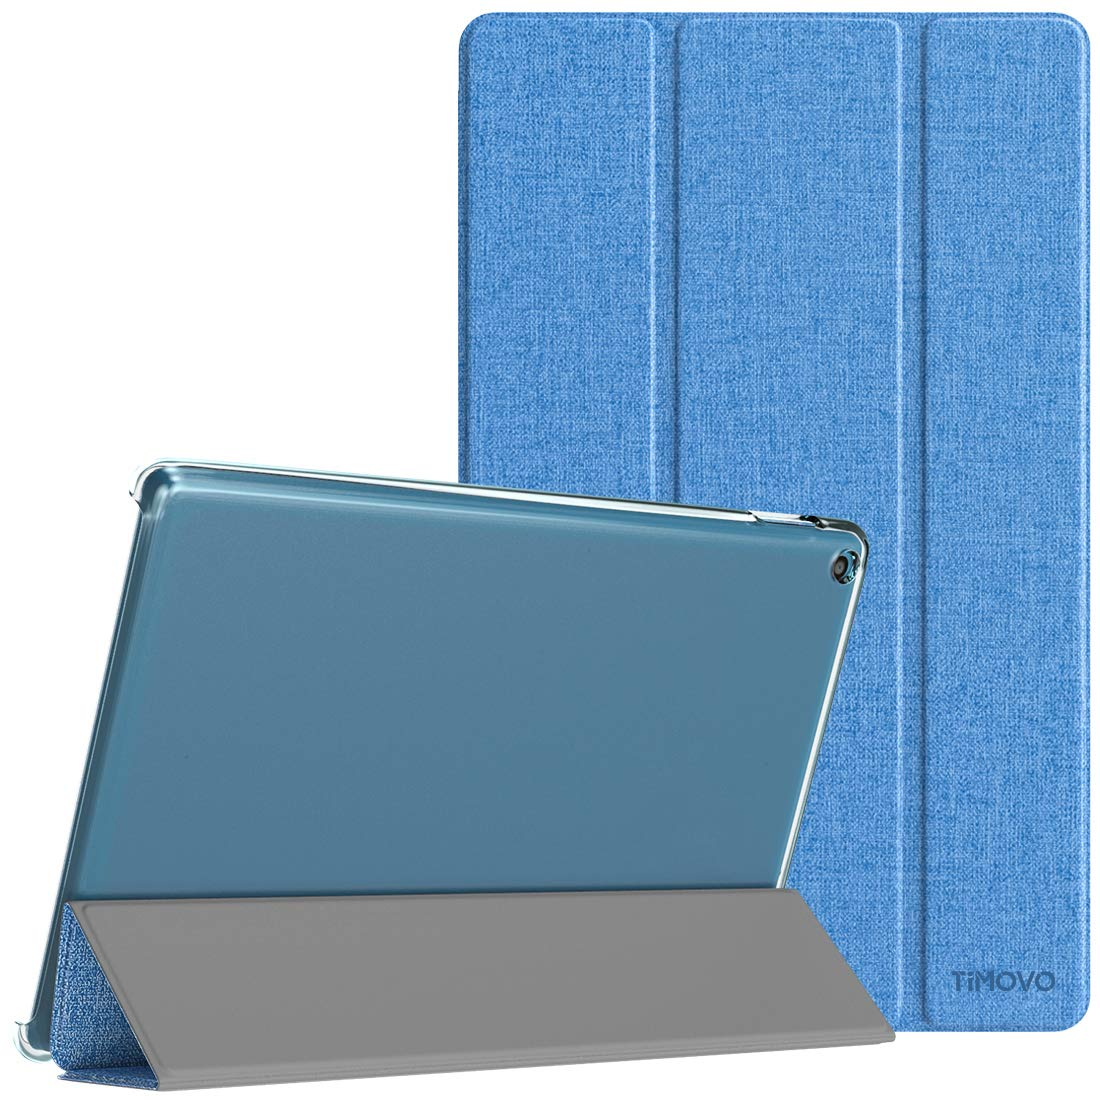 TiMOVO Case for All-New Amazon Fire HD 10 Tablet (9th Generation, 2019 Release), Lightweight Slim Tri-fold Stand Cover Translucent Case with Auto Wake/Sleep Fit Fire HD 10 Tablet - Twilight Blue